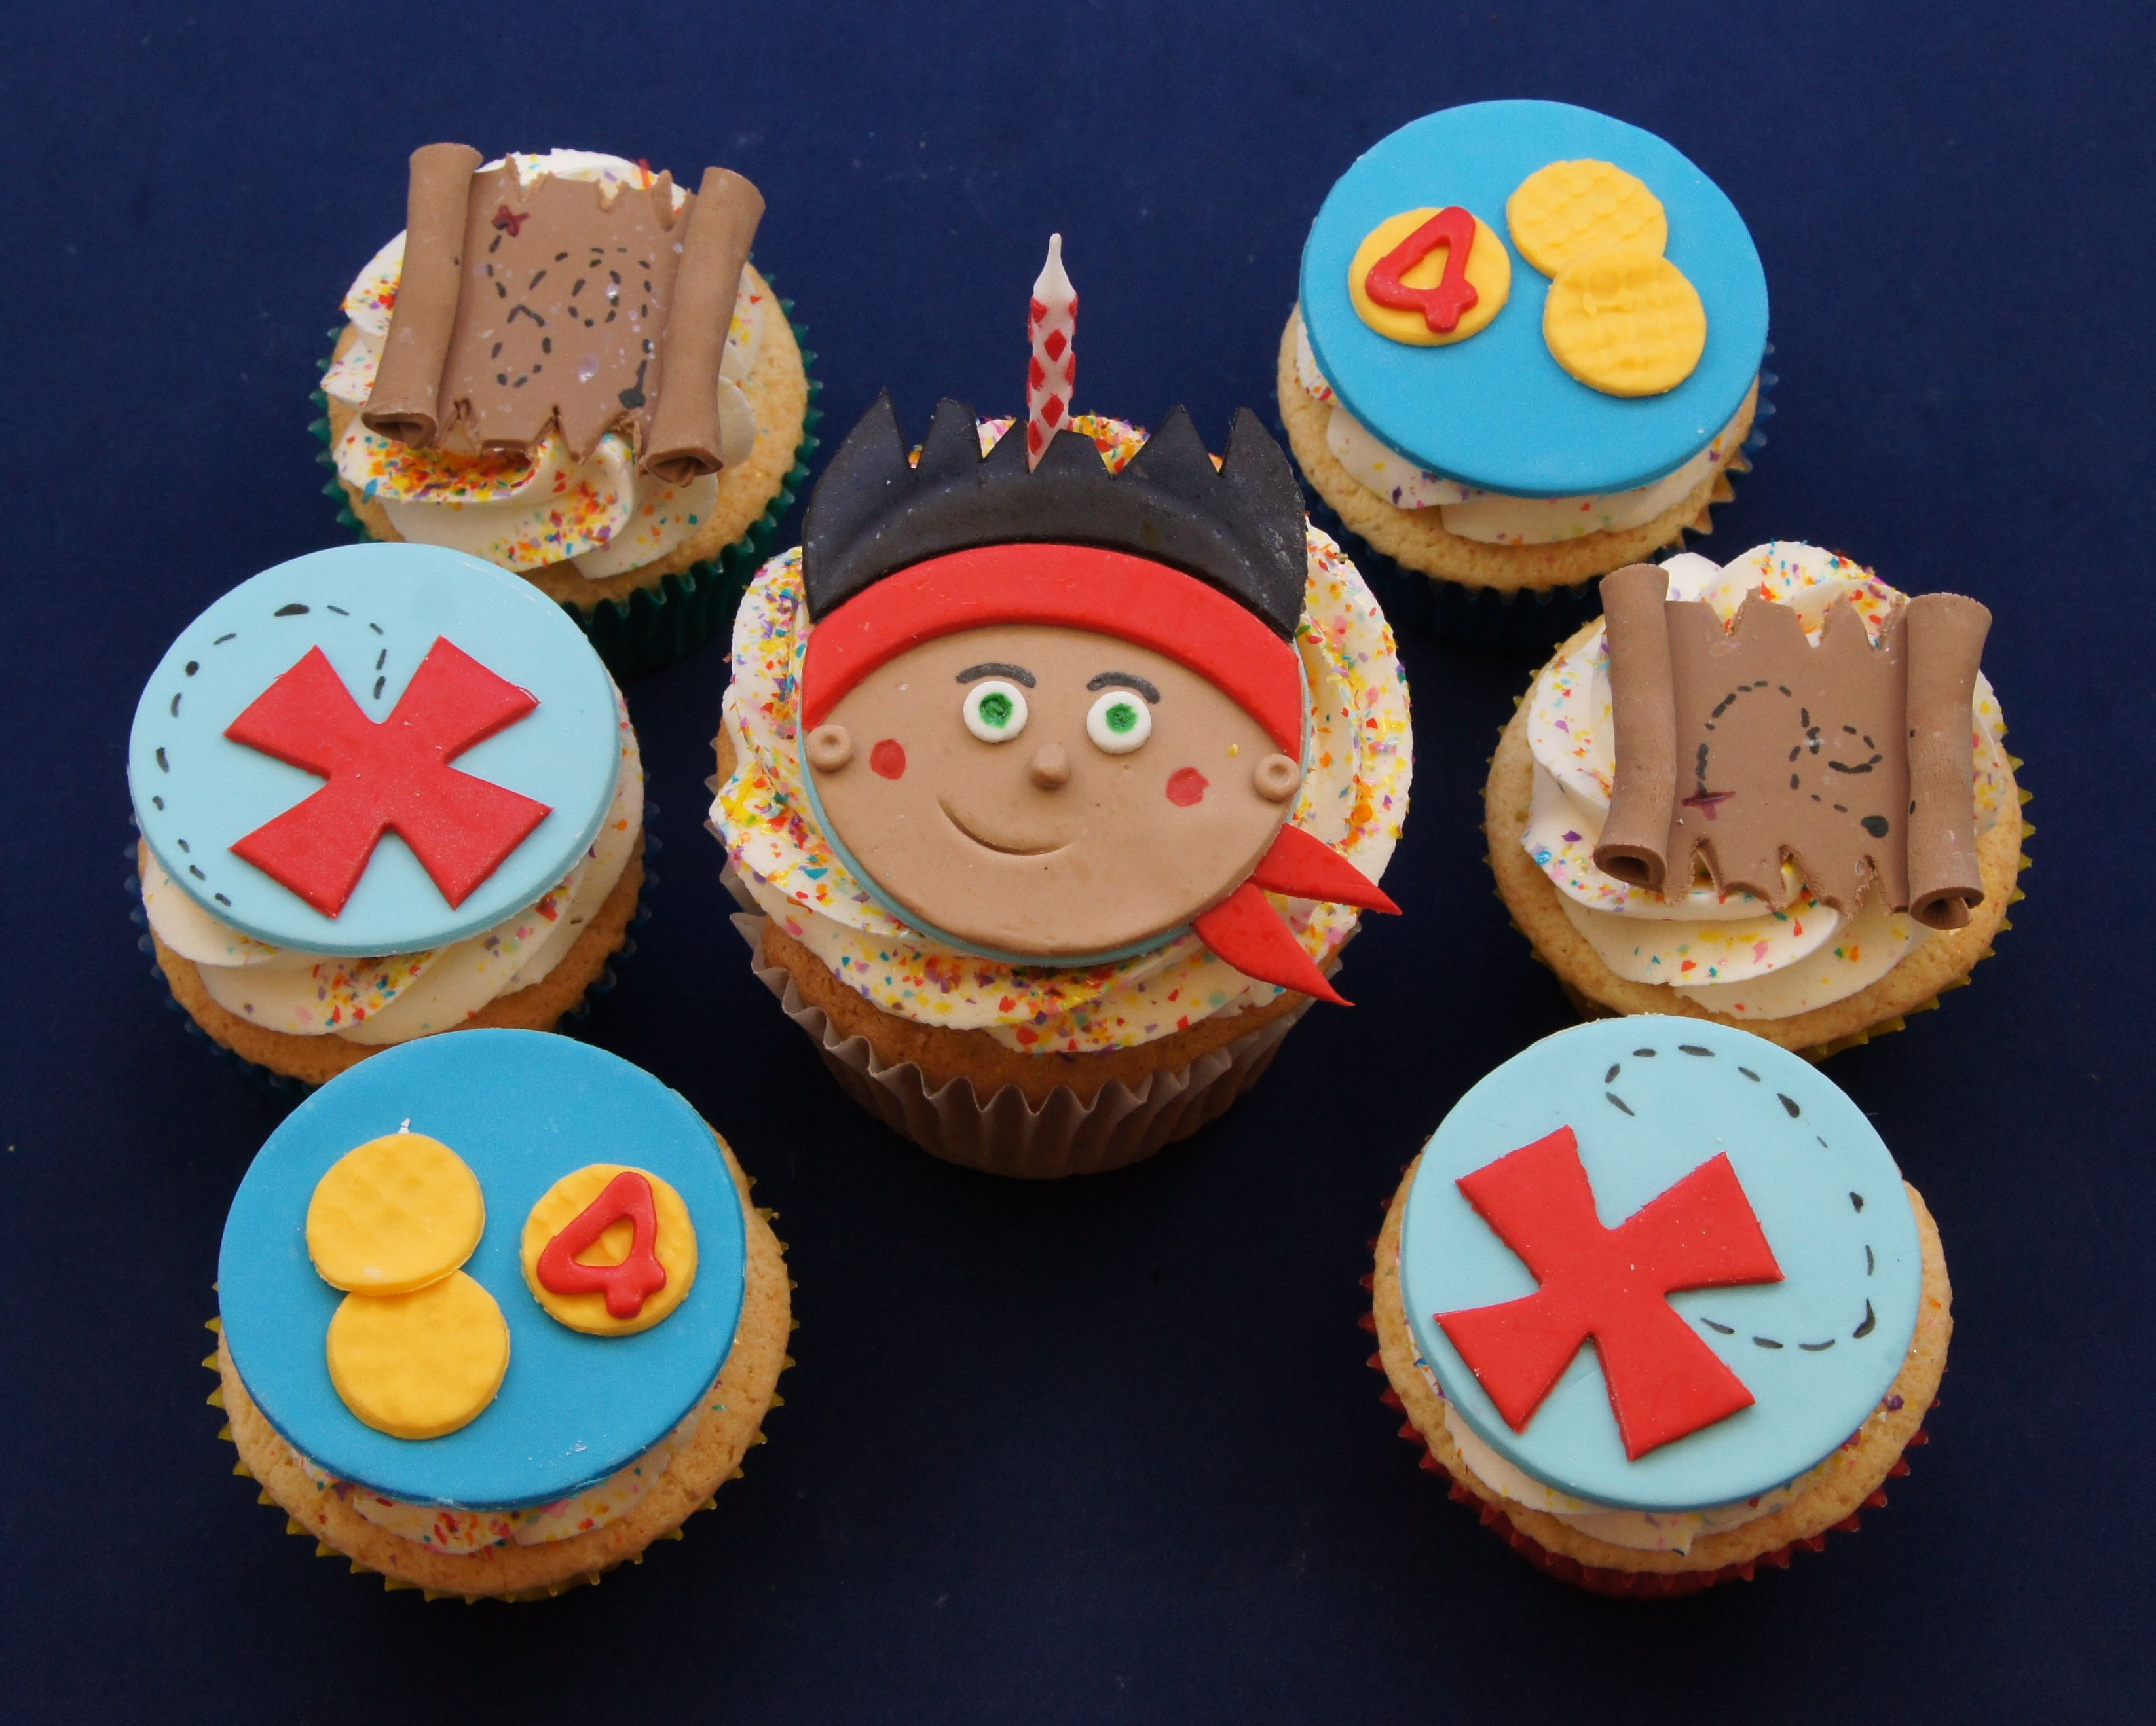 Cake ideas on pinterest pirate cakes marshmallow fondant and - Jake And The Neverland Pirates Cupcakes